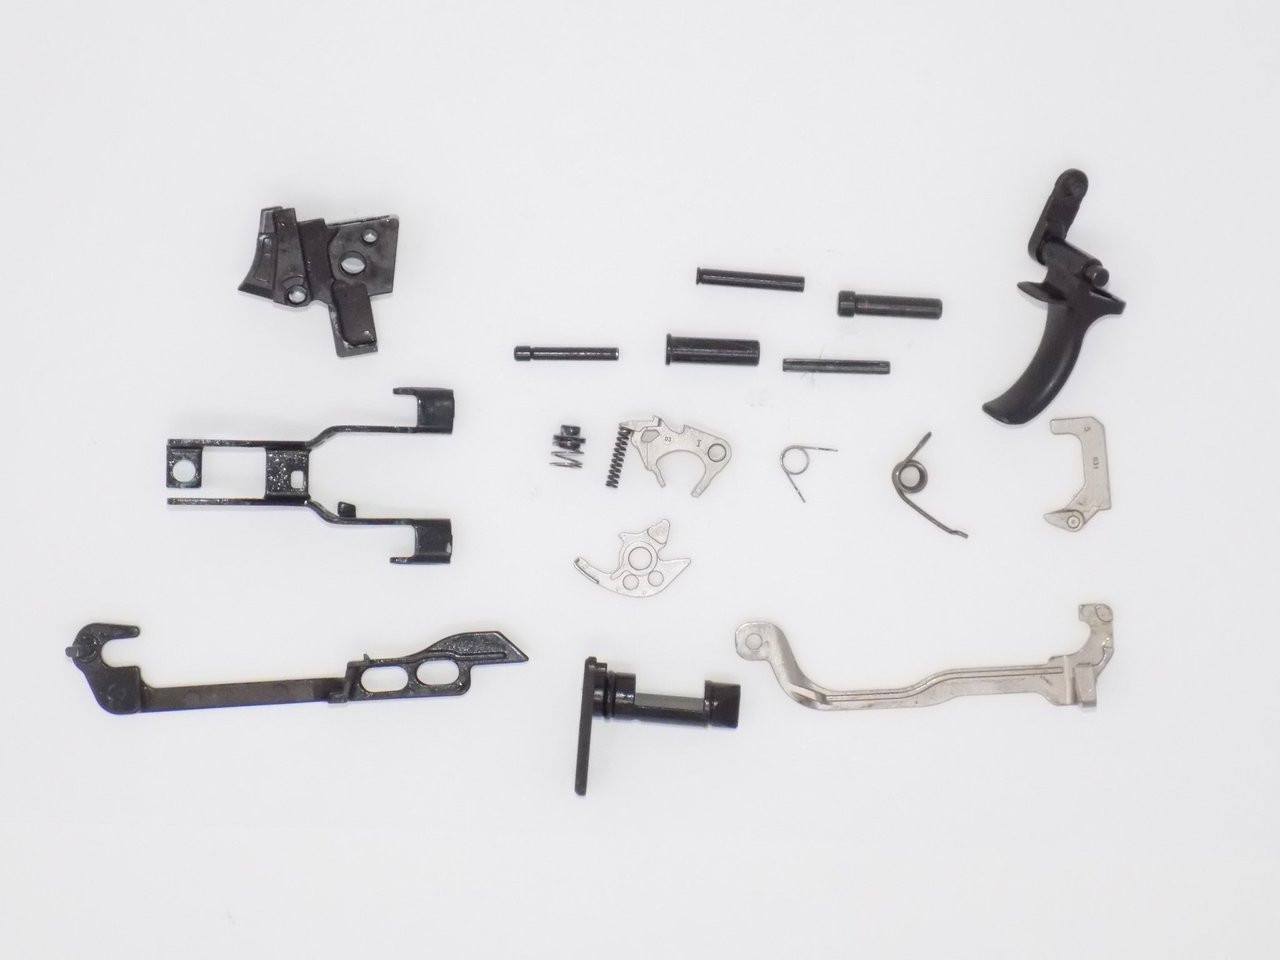 hight resolution of refurbished full build kit sig sauer p320